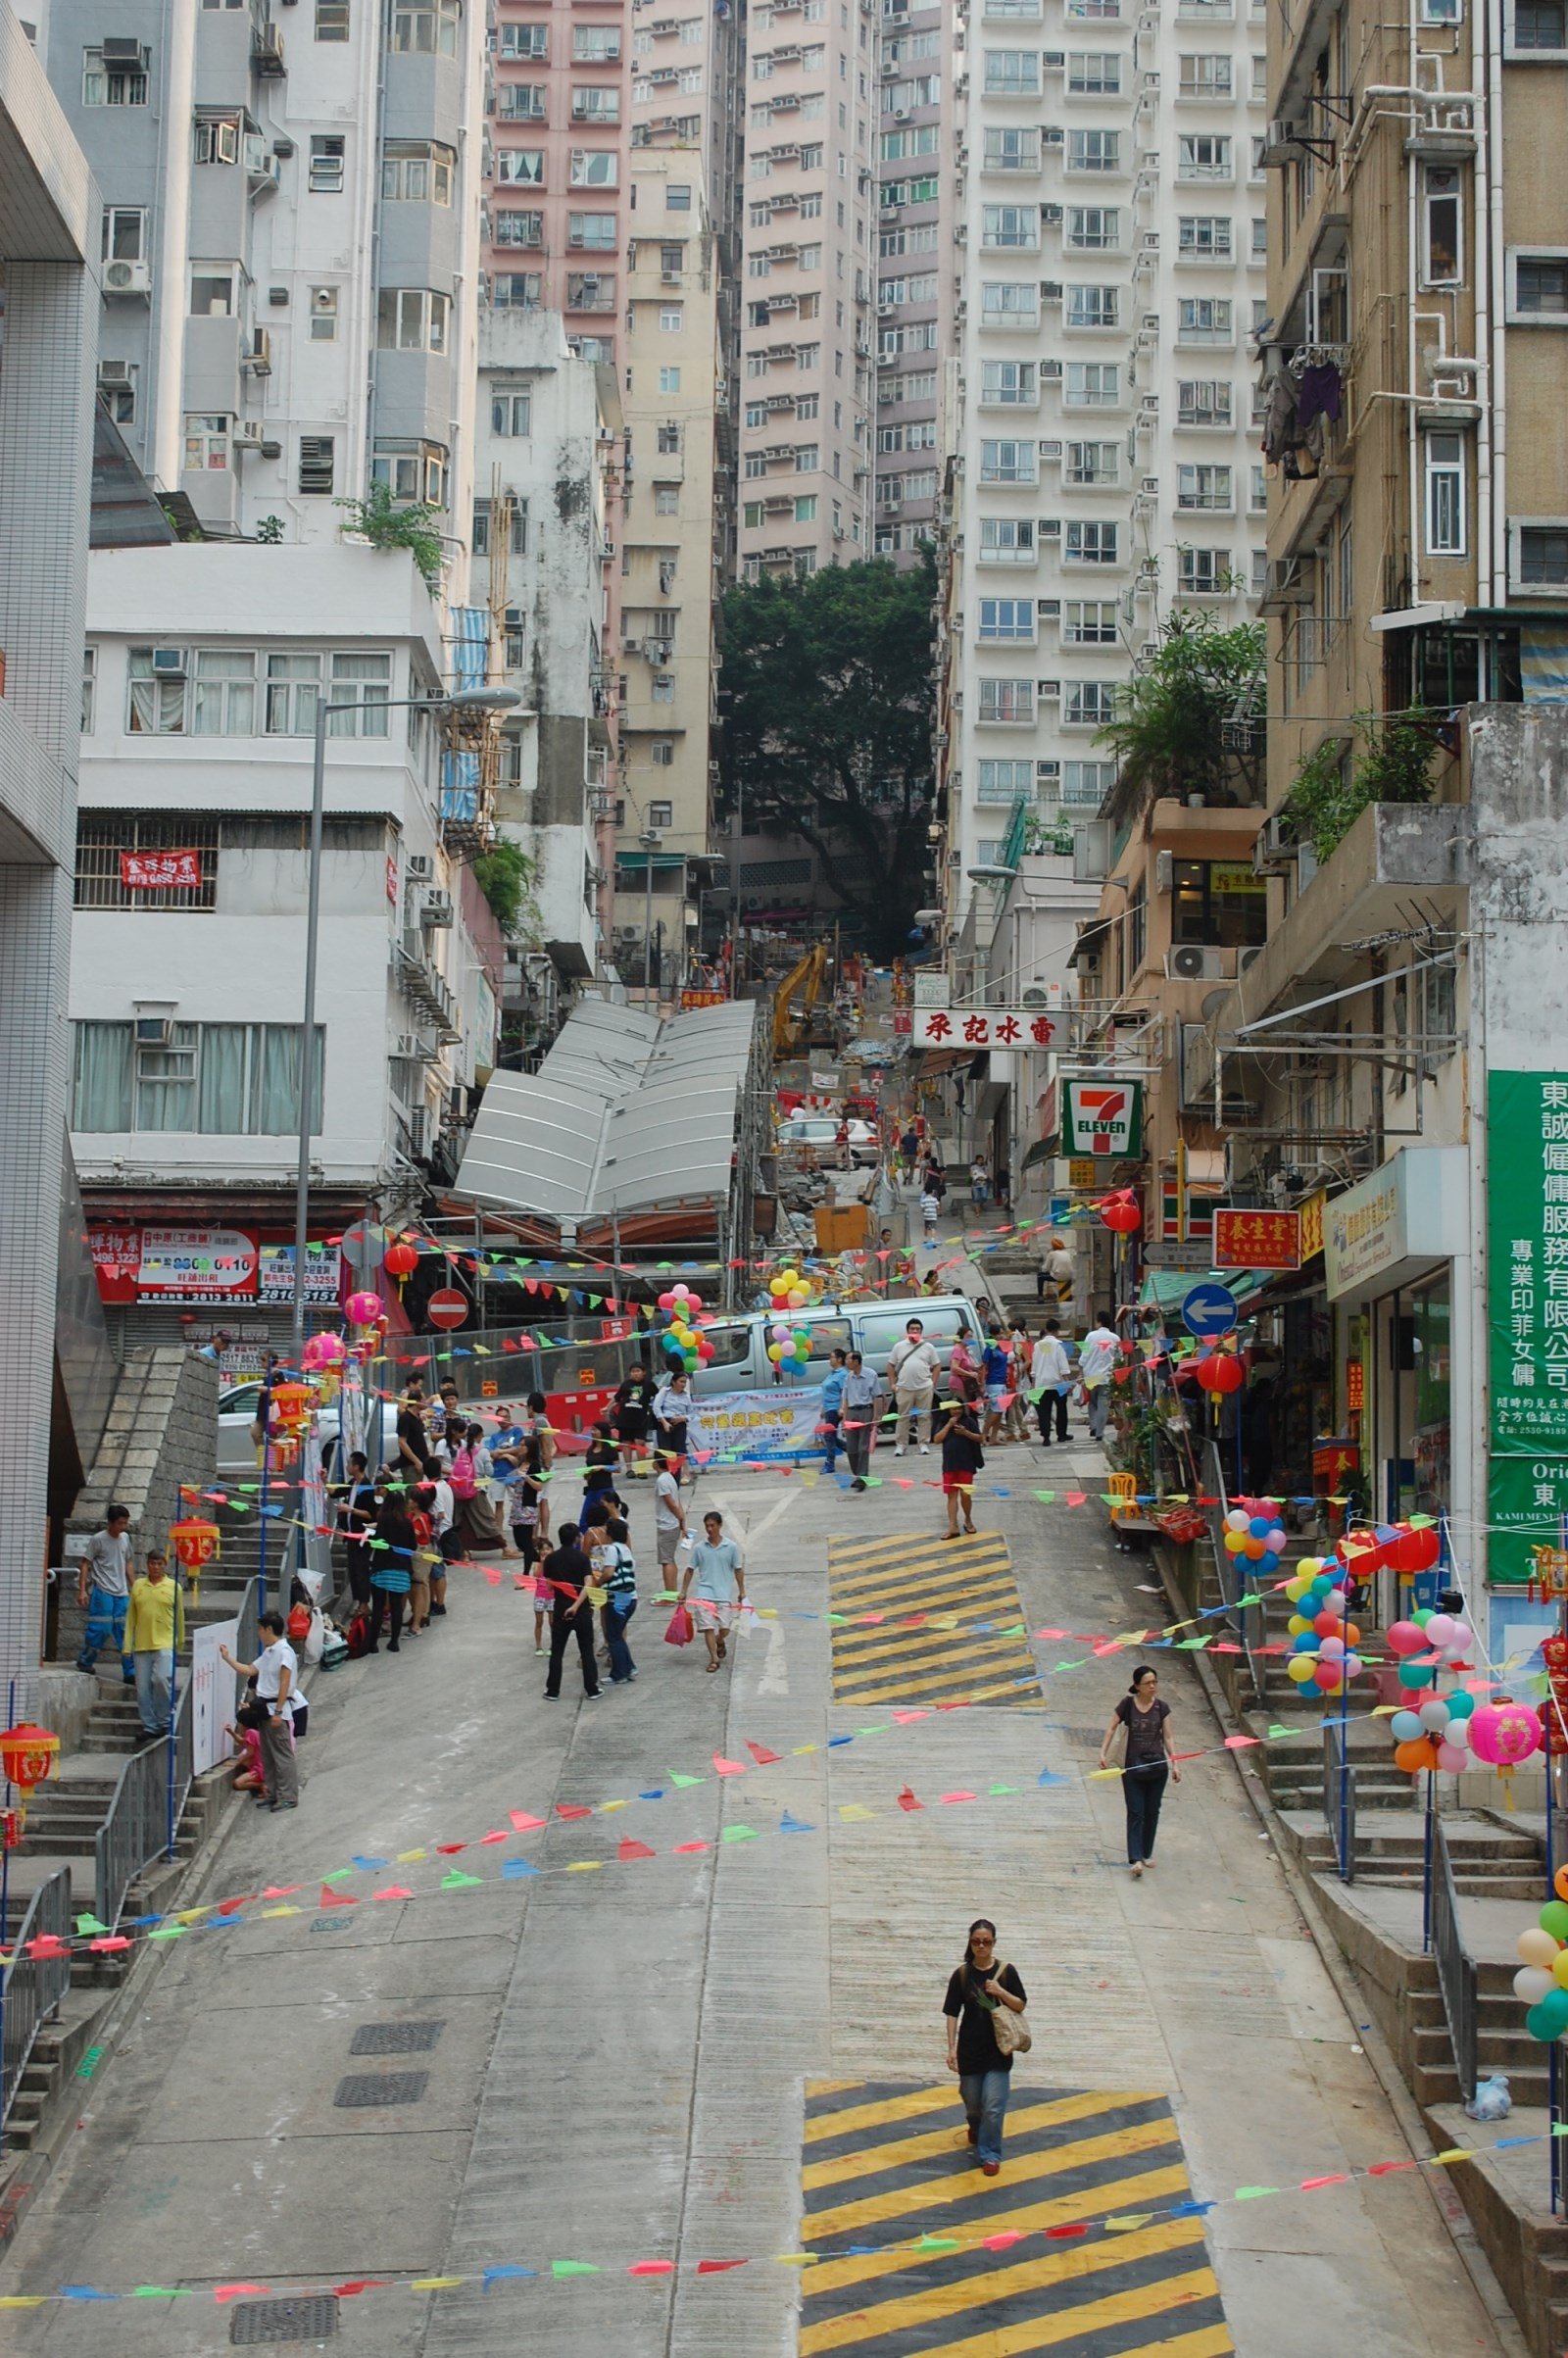 """The """"Magic Carpet"""" outdoor cinema will be held at the steeply sloped Centre Street, which has become an underused public space. Encircled by Sai Ying Pun's unique cityscape and eclectic architectural styles, one also catches a glimpse of Victoria Harbour on Centre Street."""